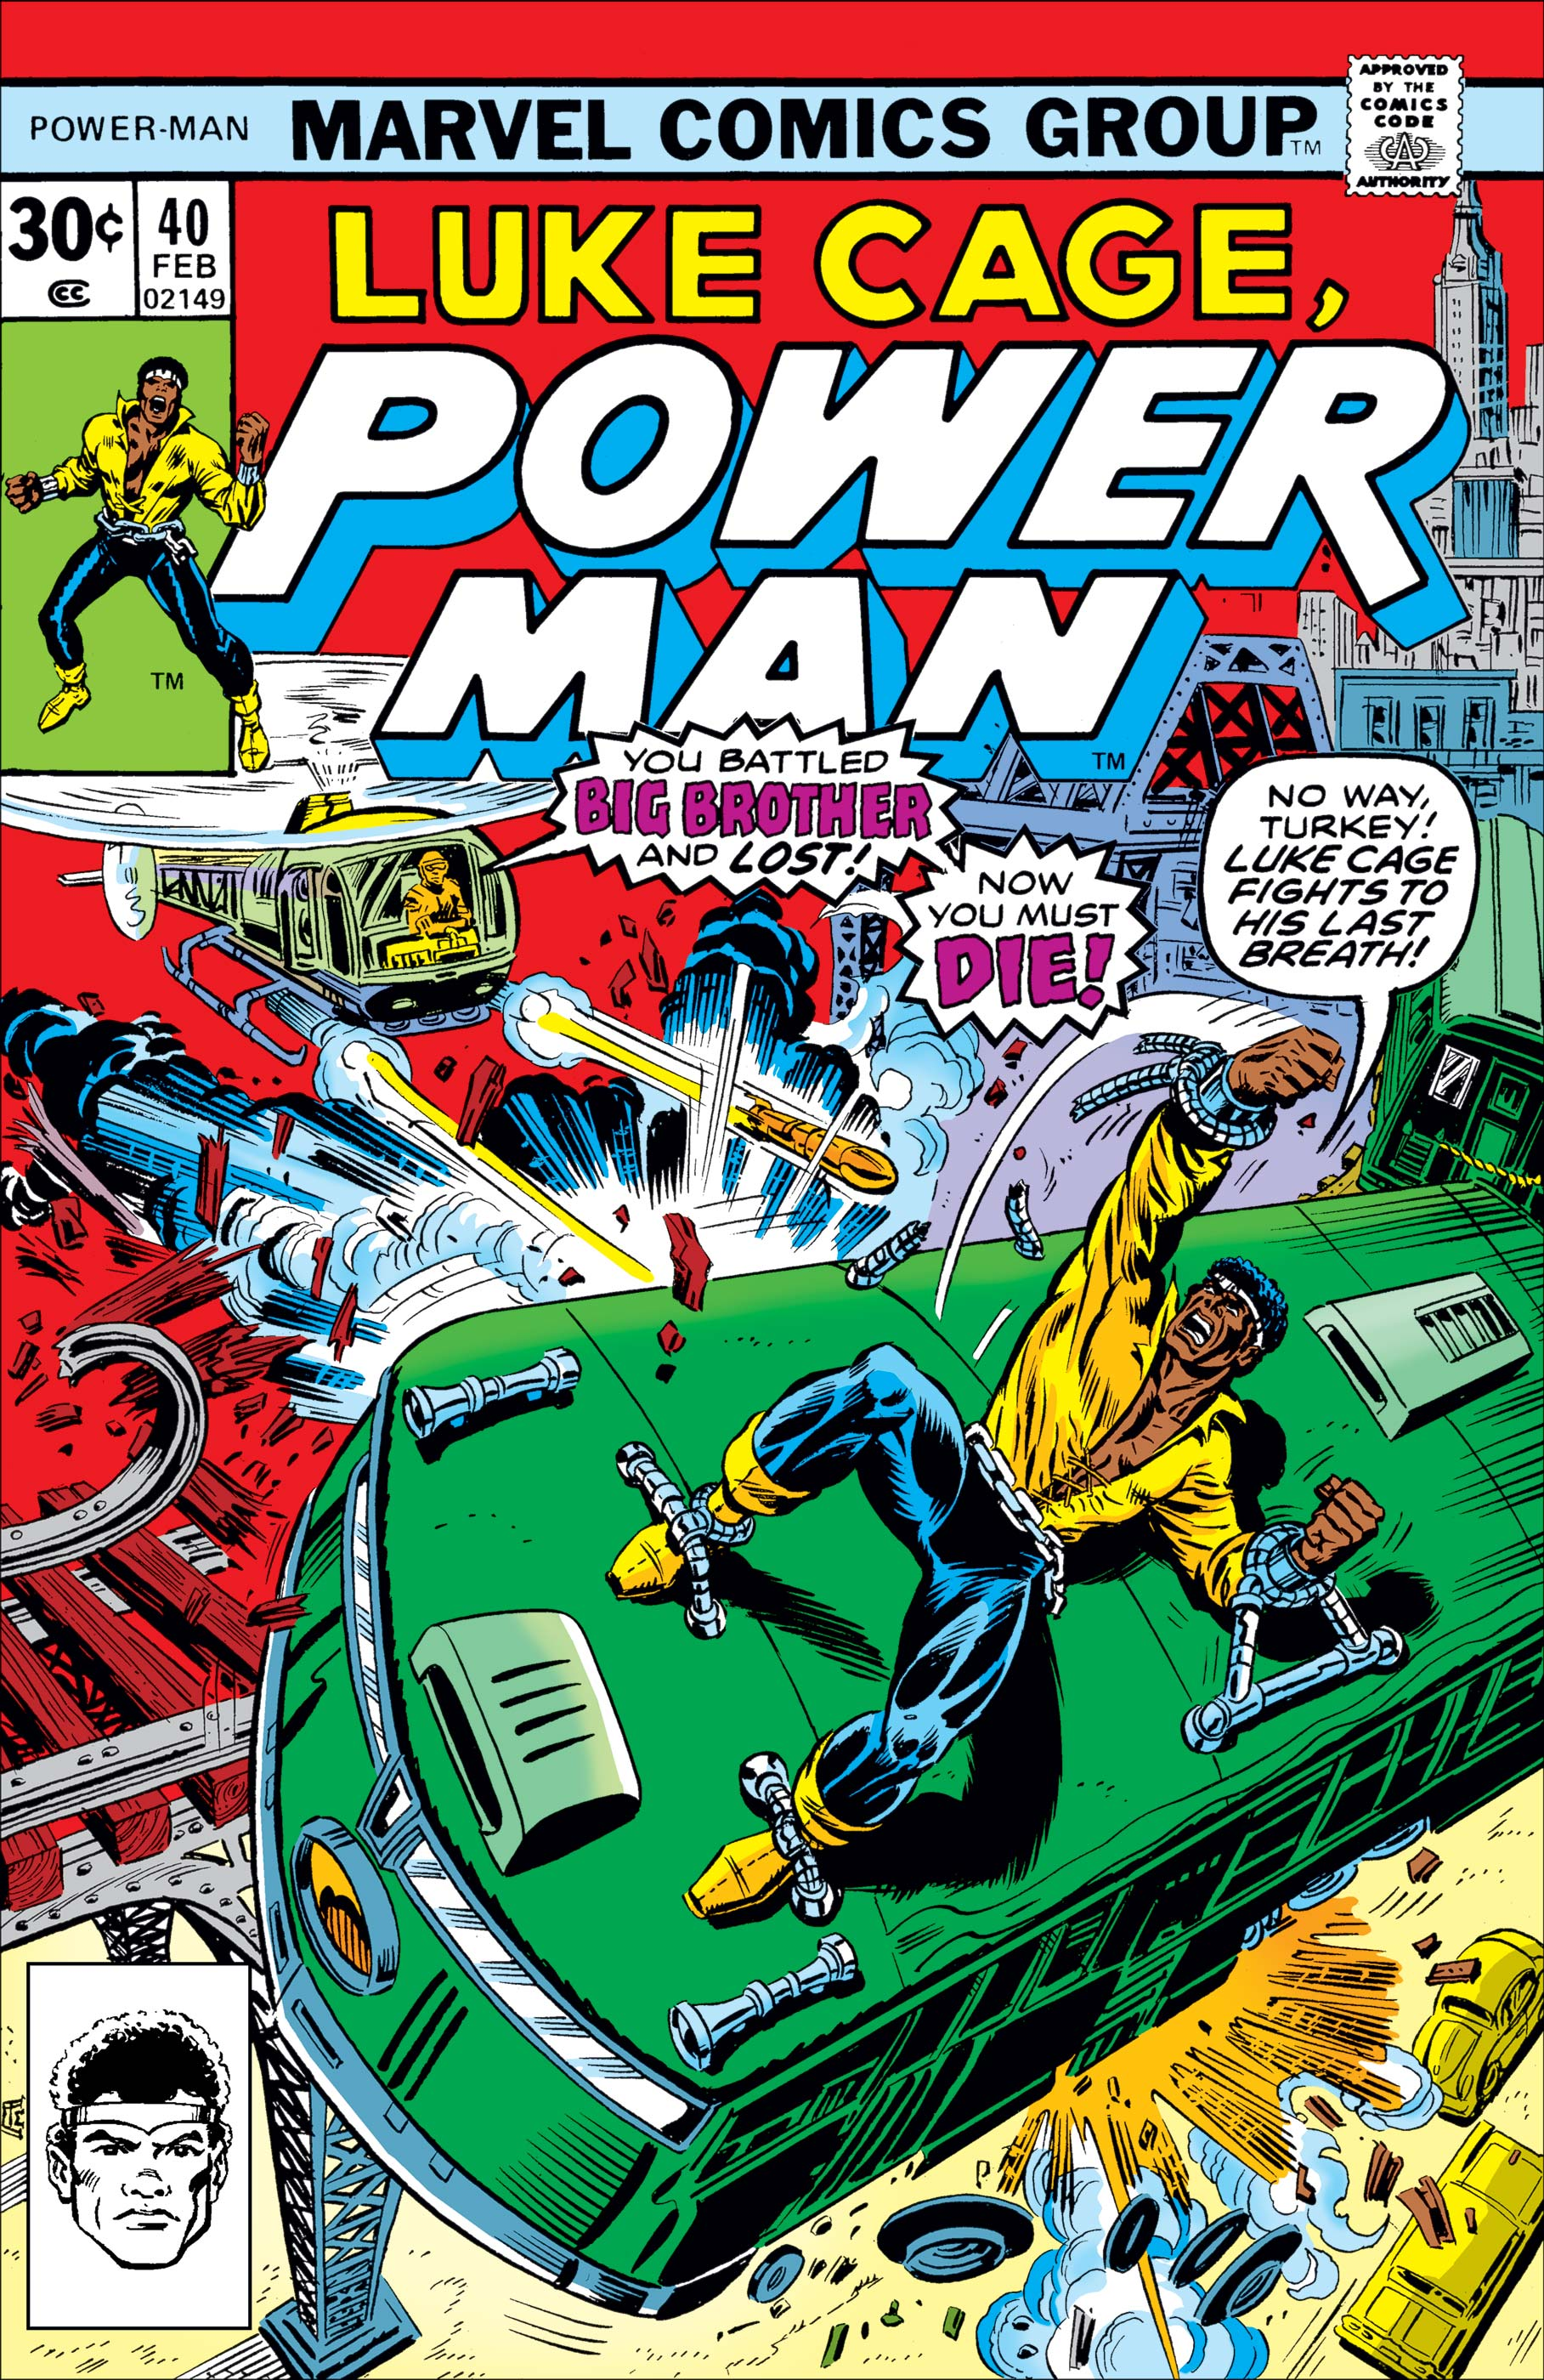 Power Man (1974) #40